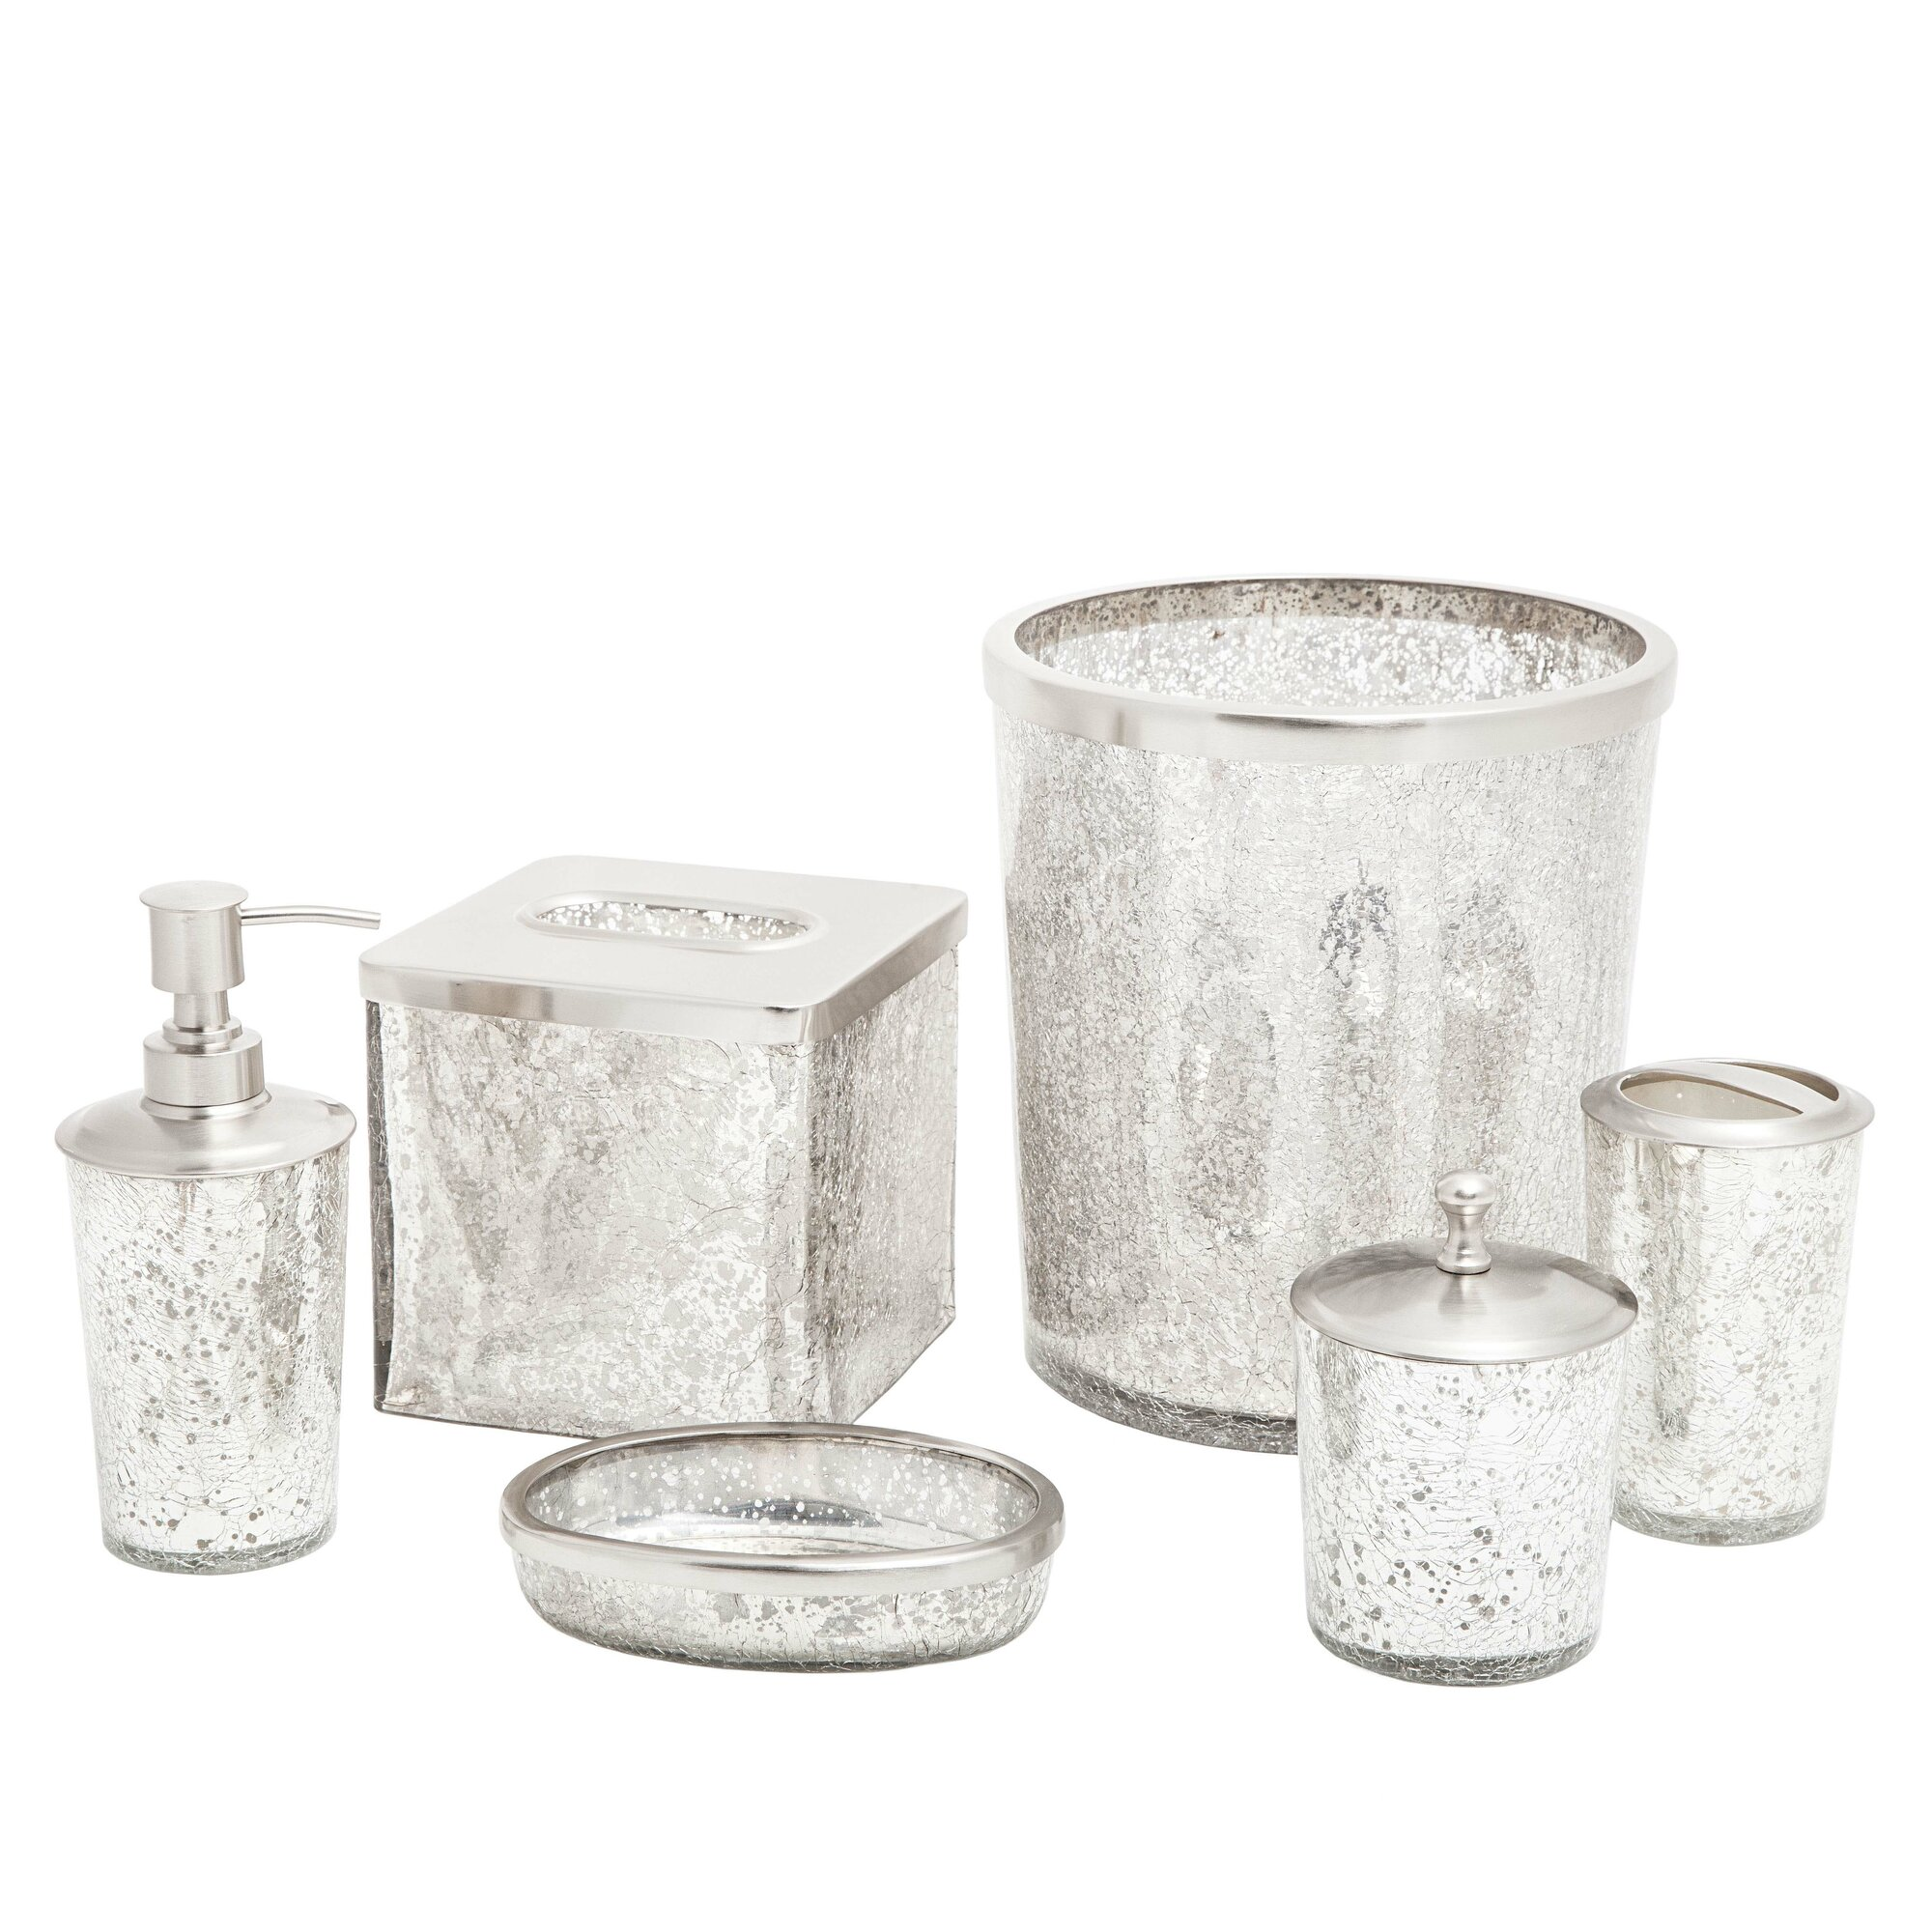 Chrome Bathroom Accessories Sets - Ice 6 piece bathroom accessory set